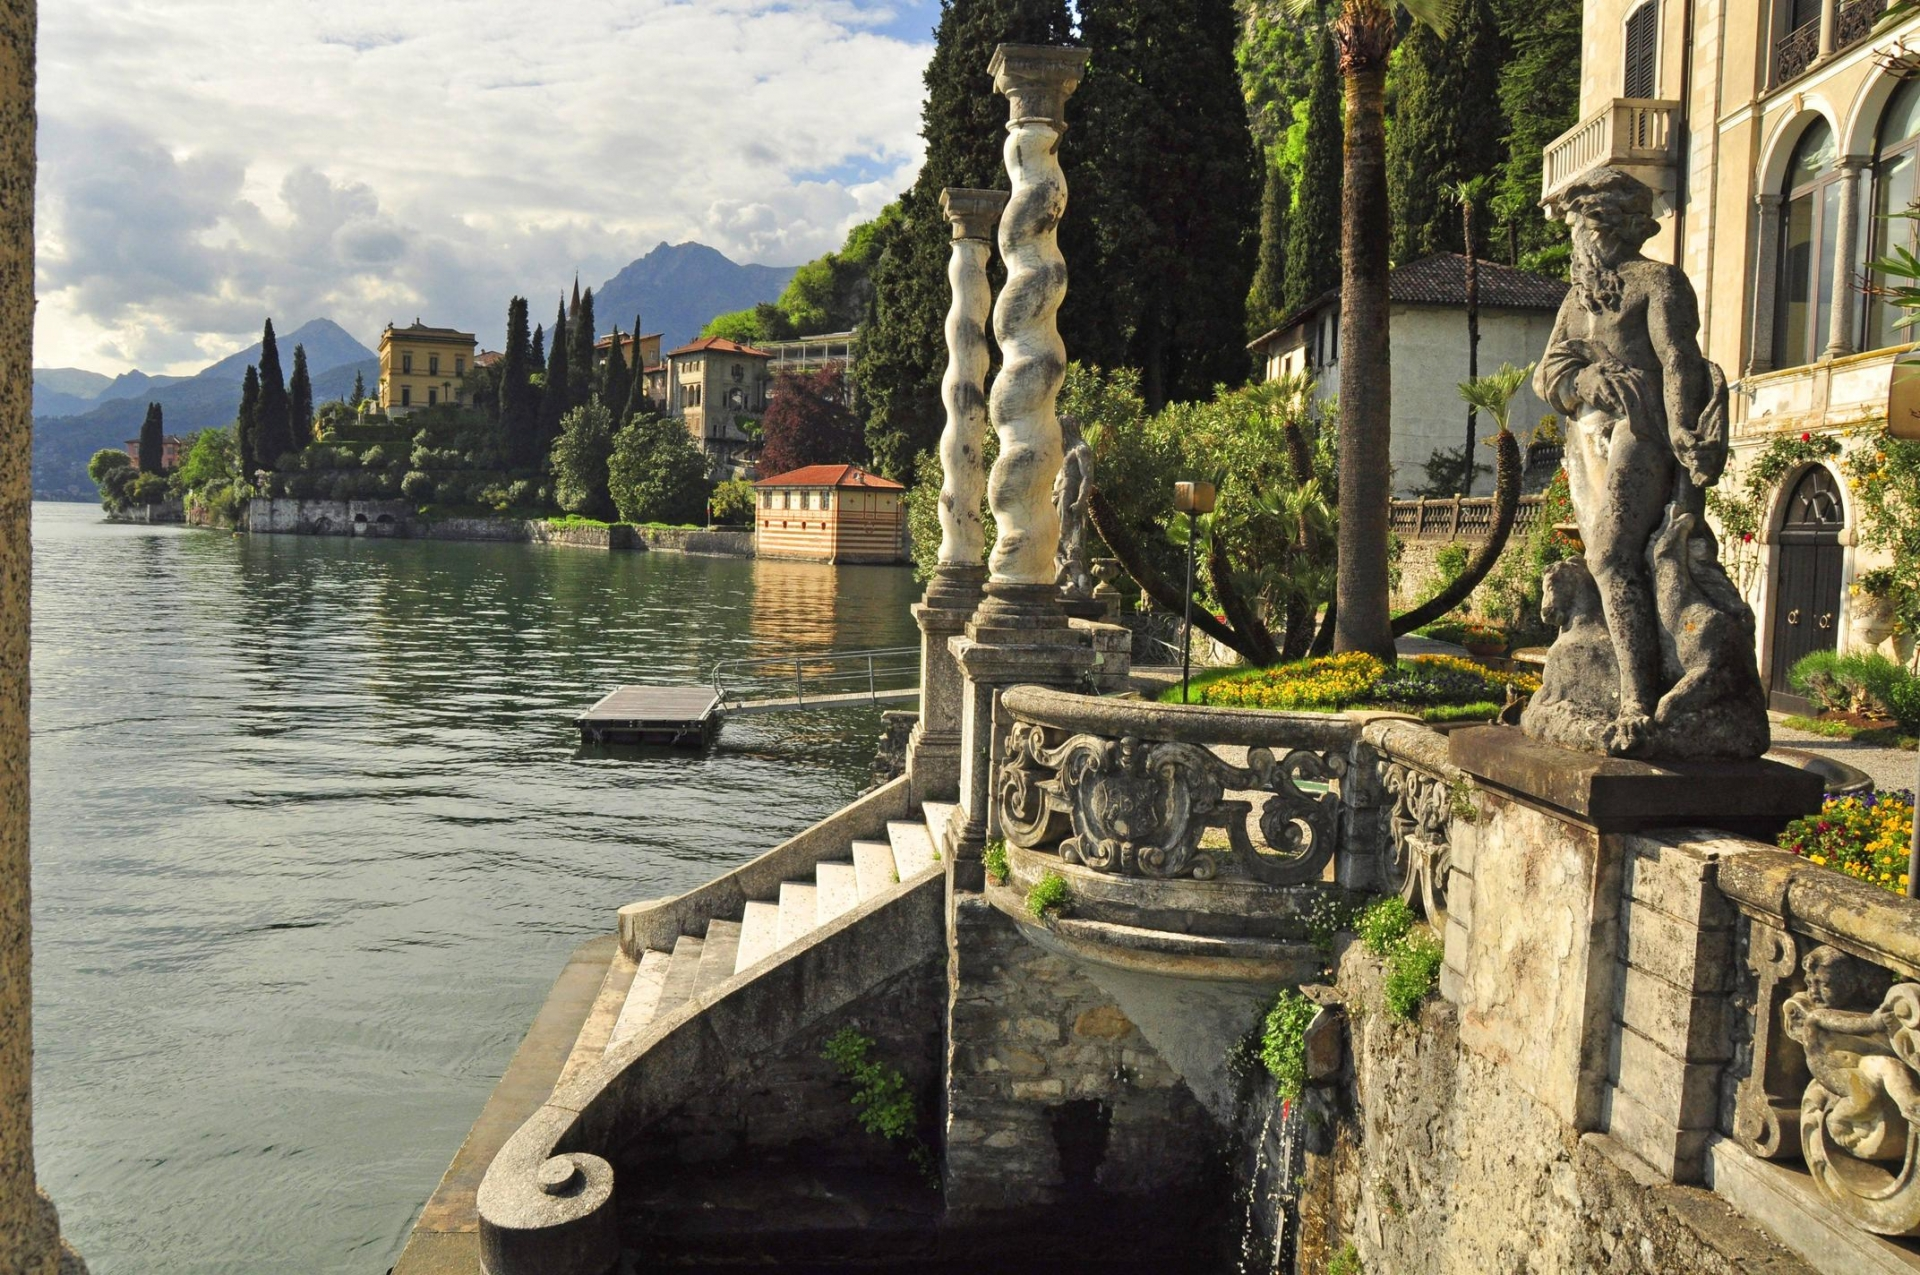 The charming, picturesque villages are enhanced by the stunning nature surrounding the lake.